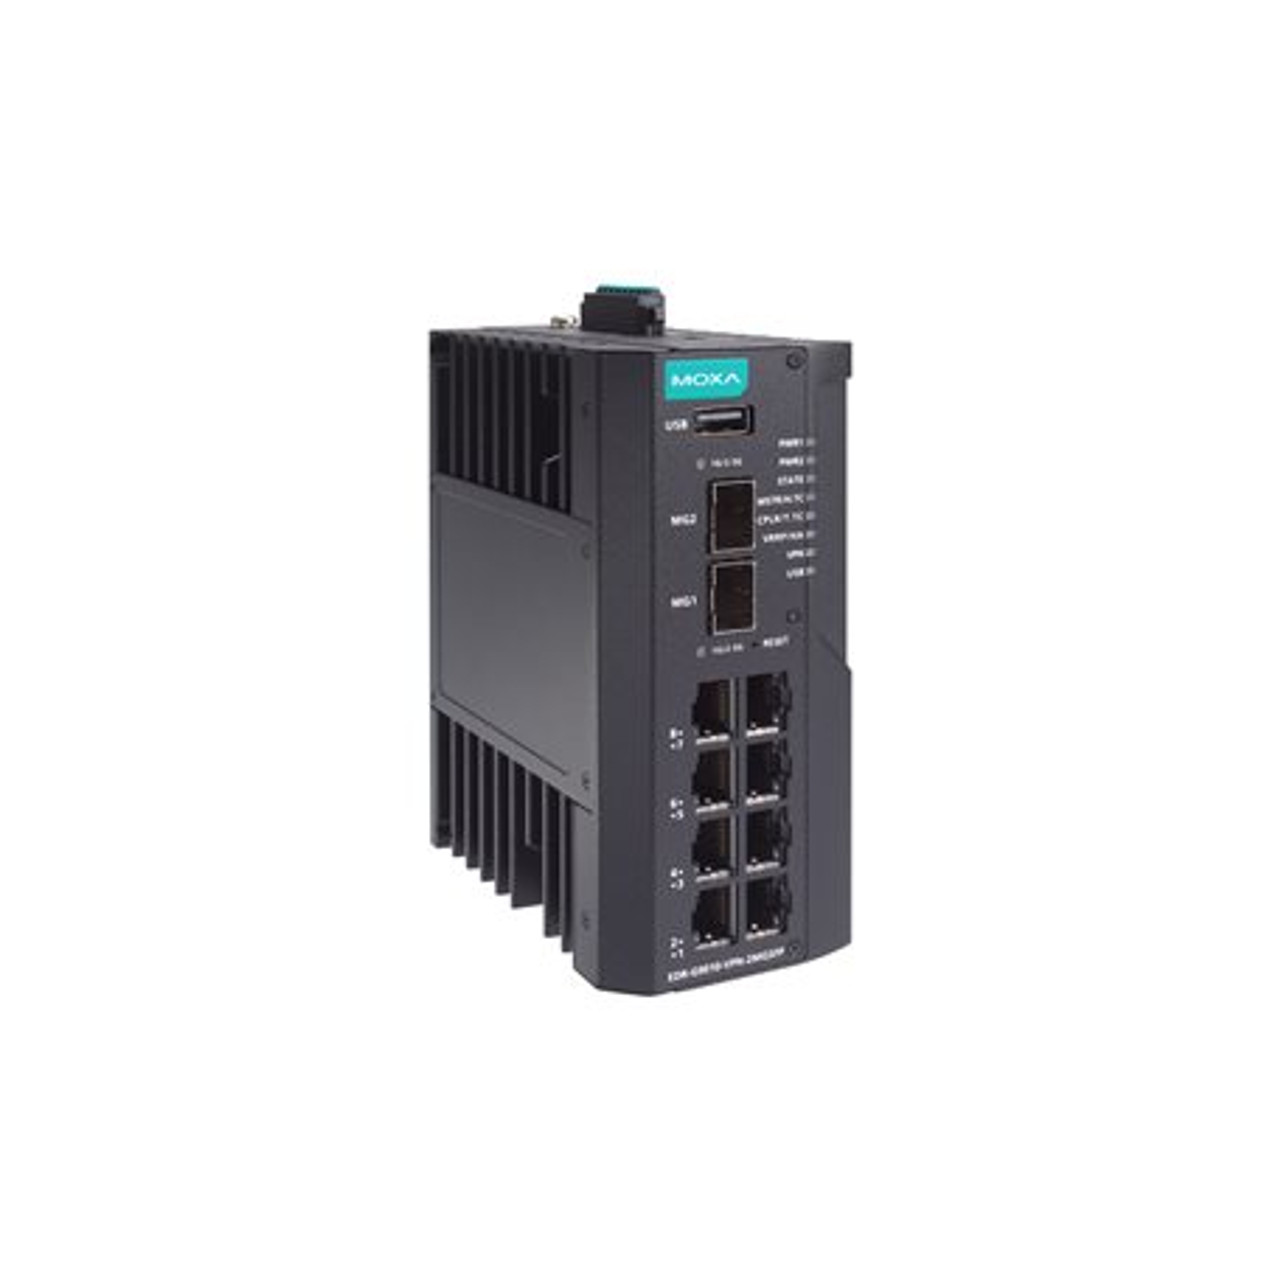 Moxa EDR-G9010-VPN-2MGSFP-T Industrial Secure Router Switch with 8 10/100/1000BaseT(X) ports, 2 1/2.5GbE SFP slots, Firewall/NAT/VPN, -40 to 75°C